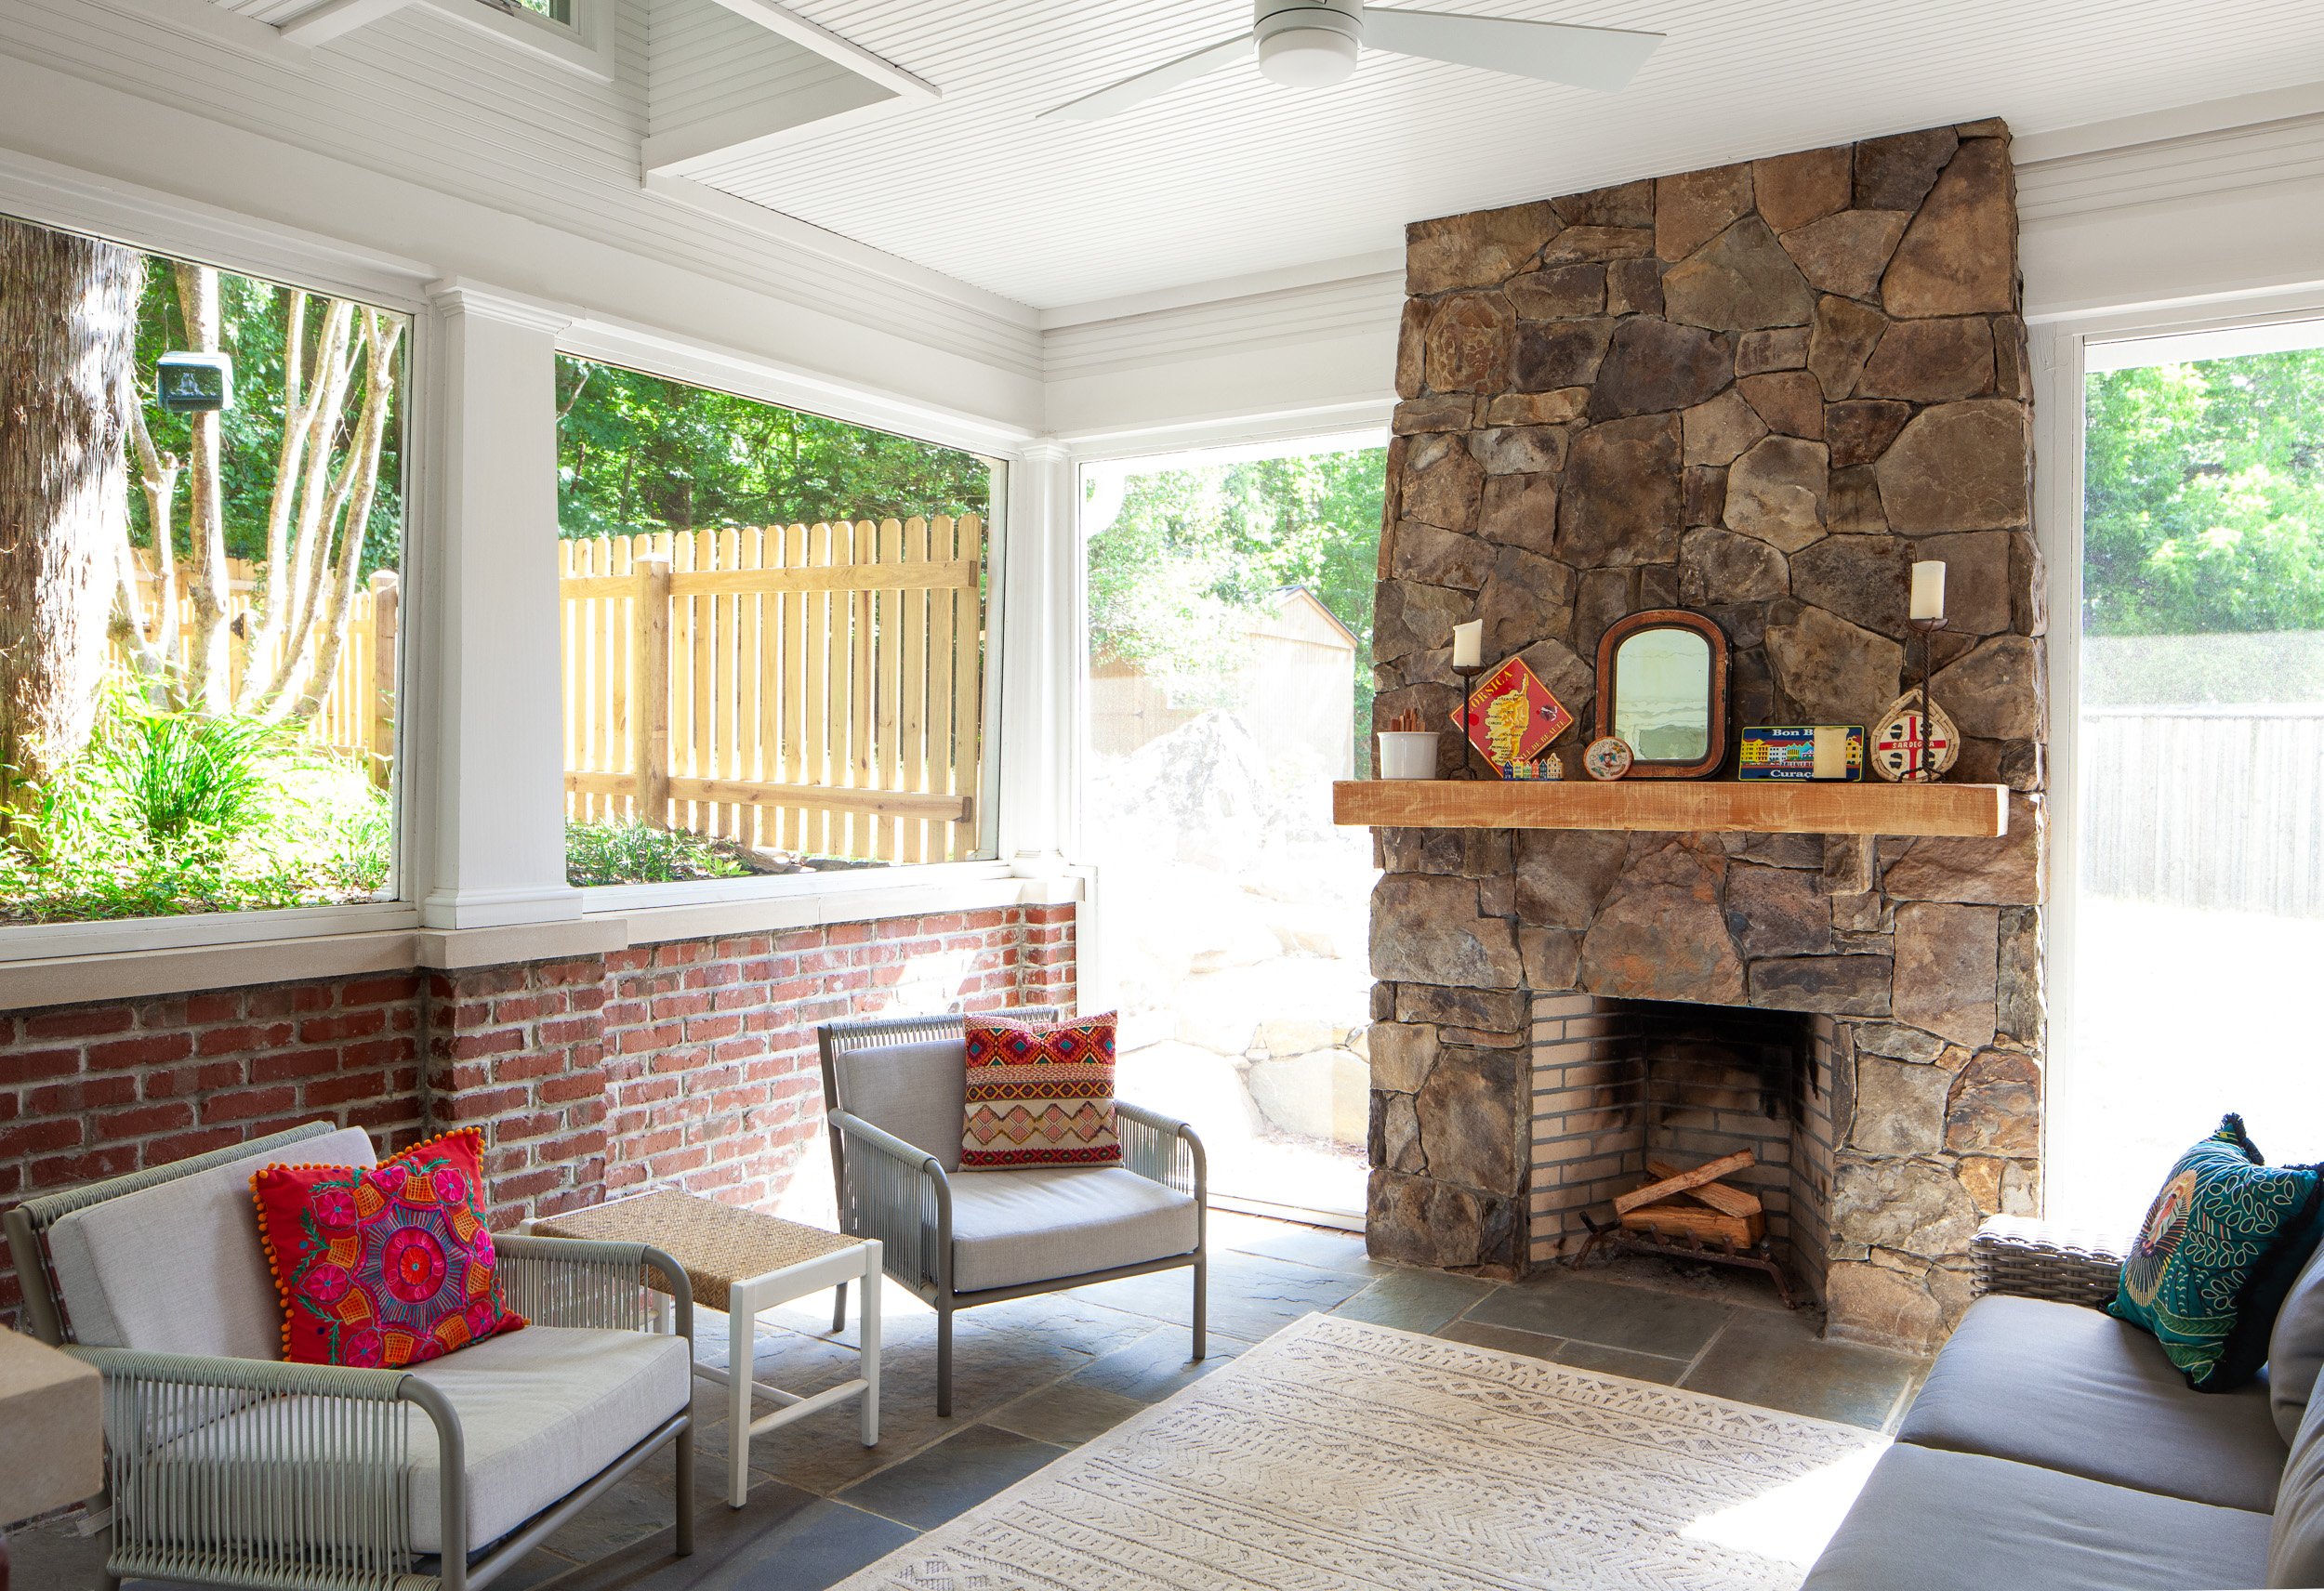 ch_fireplace_patio_web_5